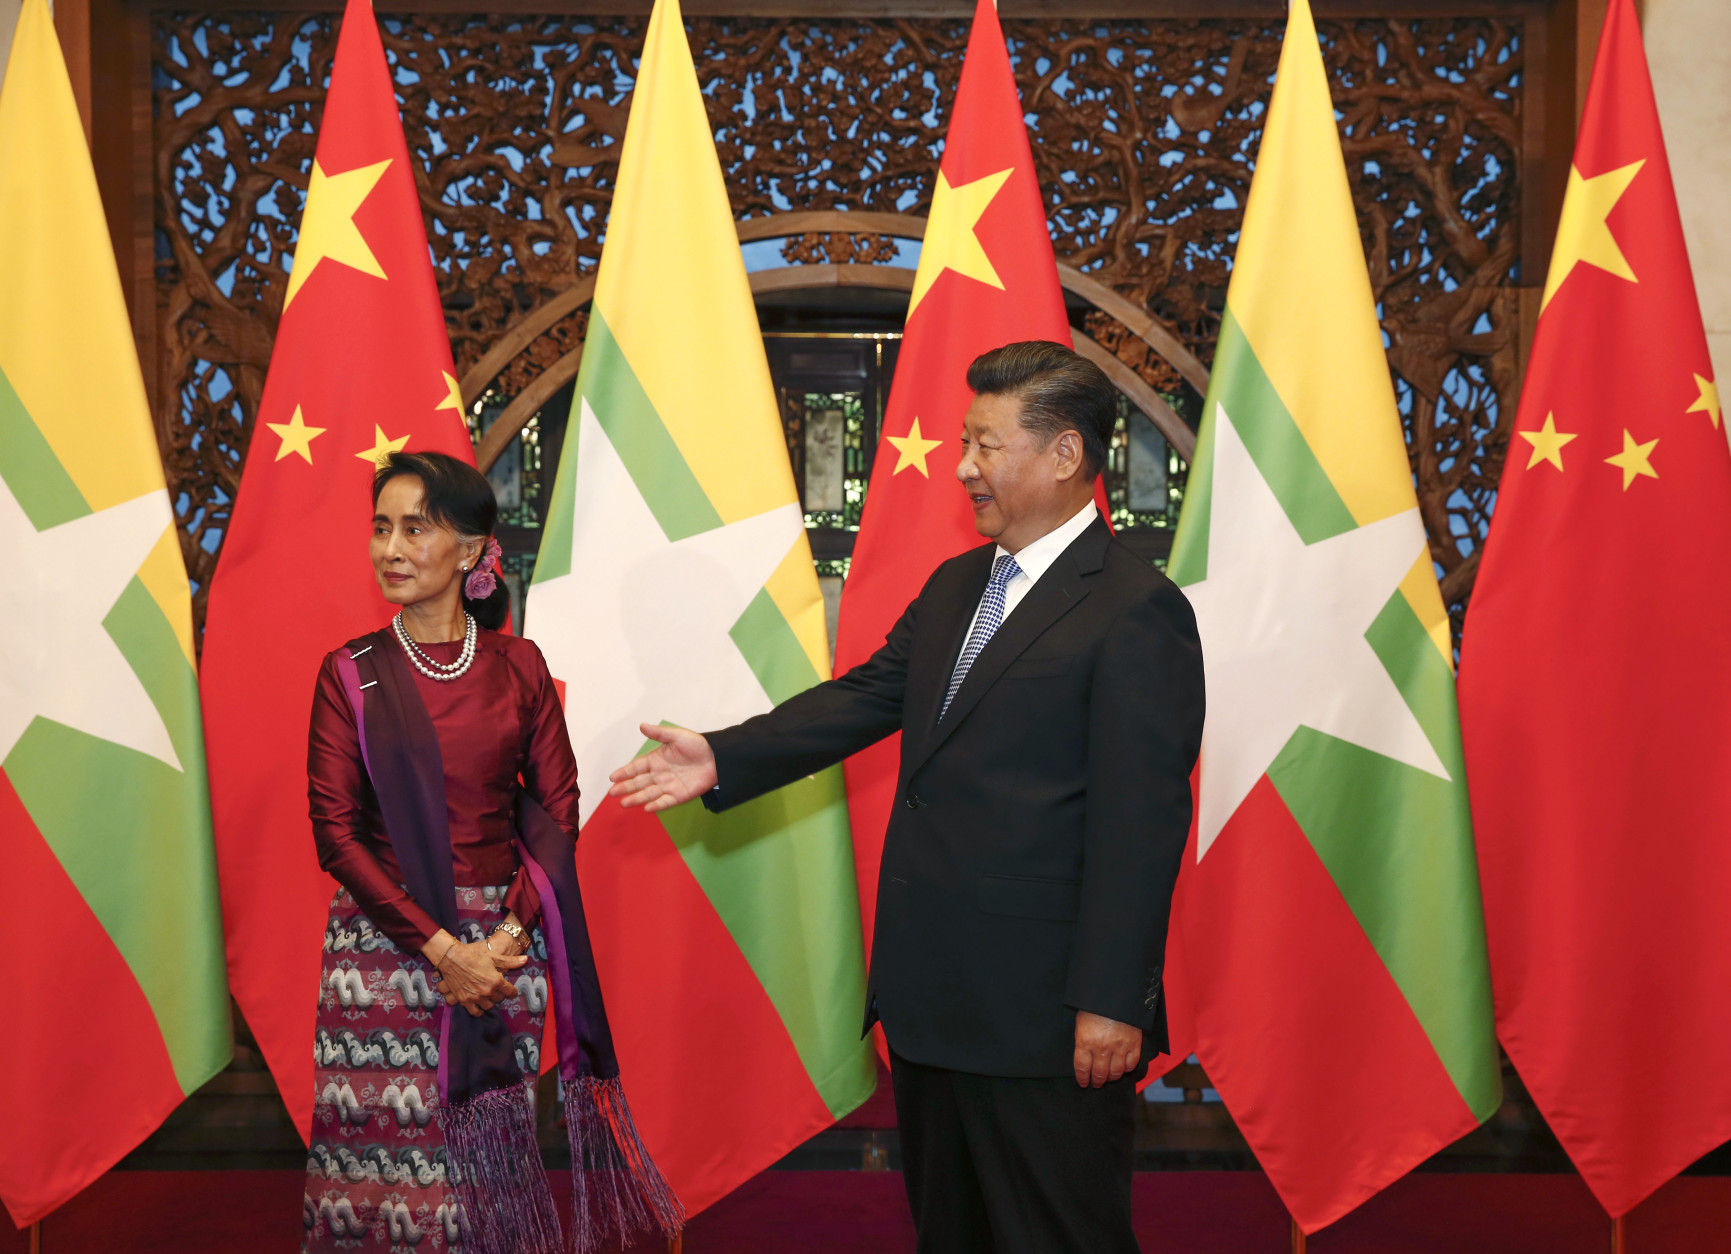 Myanmar's State Counselor Aung San Suu Kyi, left, and Chinese President Xi Jinping, right,  wait for Myanmar delegates to enter for a meeting at the Diaoyutai State Guesthouse in Beijing, China, Friday, Aug. 19, 2016.  Suu Kyi was welcomed by Premier Li Keqiang at a formal ceremony Thursday at part of a visit that will include talks with President Xi. The trip ending Sunday is her first to China since her party won a historic majority last year.(Rolex Dela Pena/Pool Photo via AP)